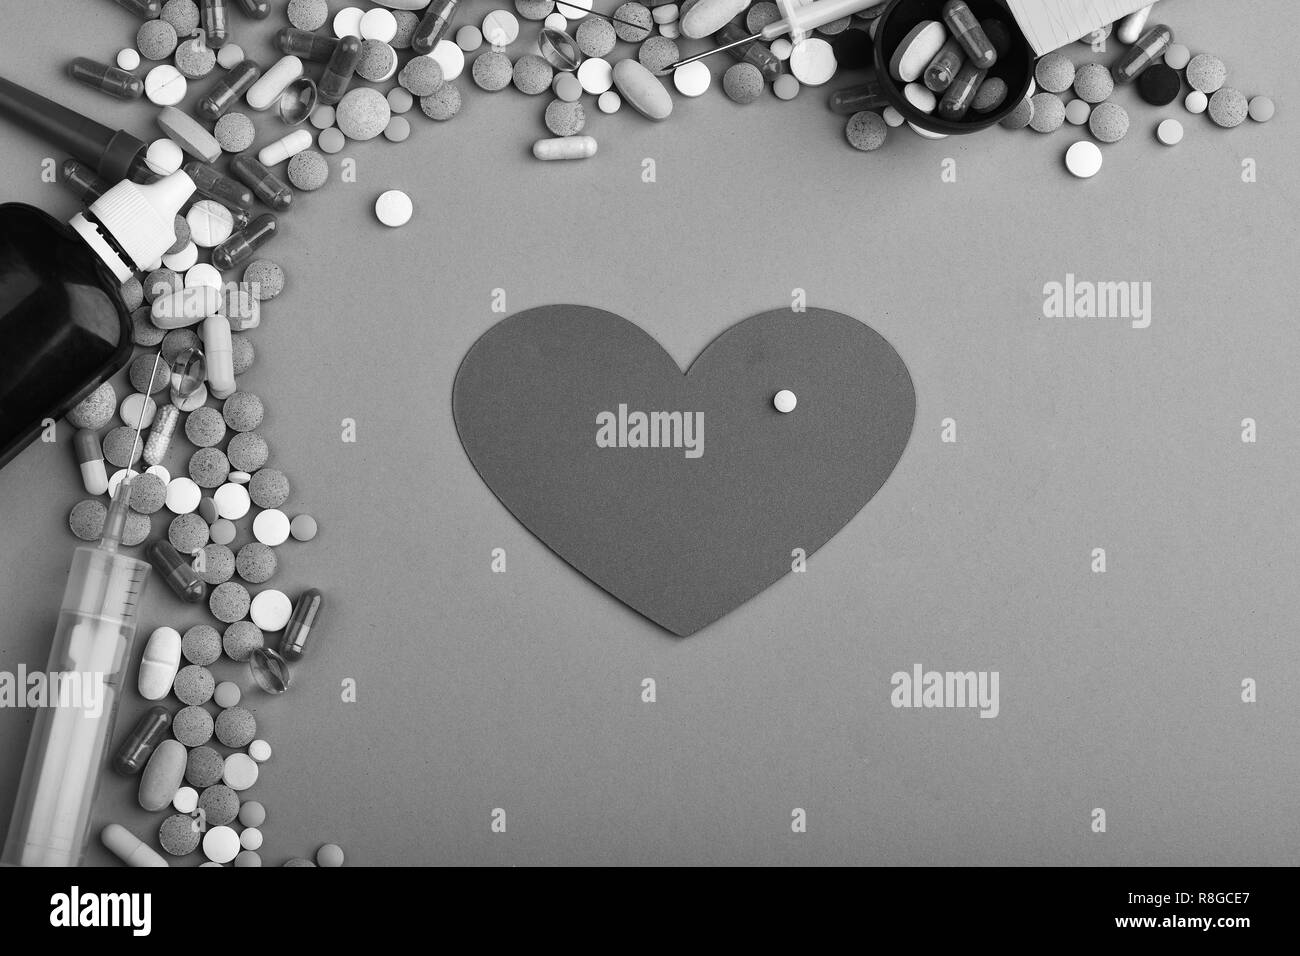 Medicine and love concept. Set of colorful pills scattered on green background, copy space. Drugs near syrup bottle, syringes, measuring spoon and heart in middle. Frame made of pills and capsules - Stock Image